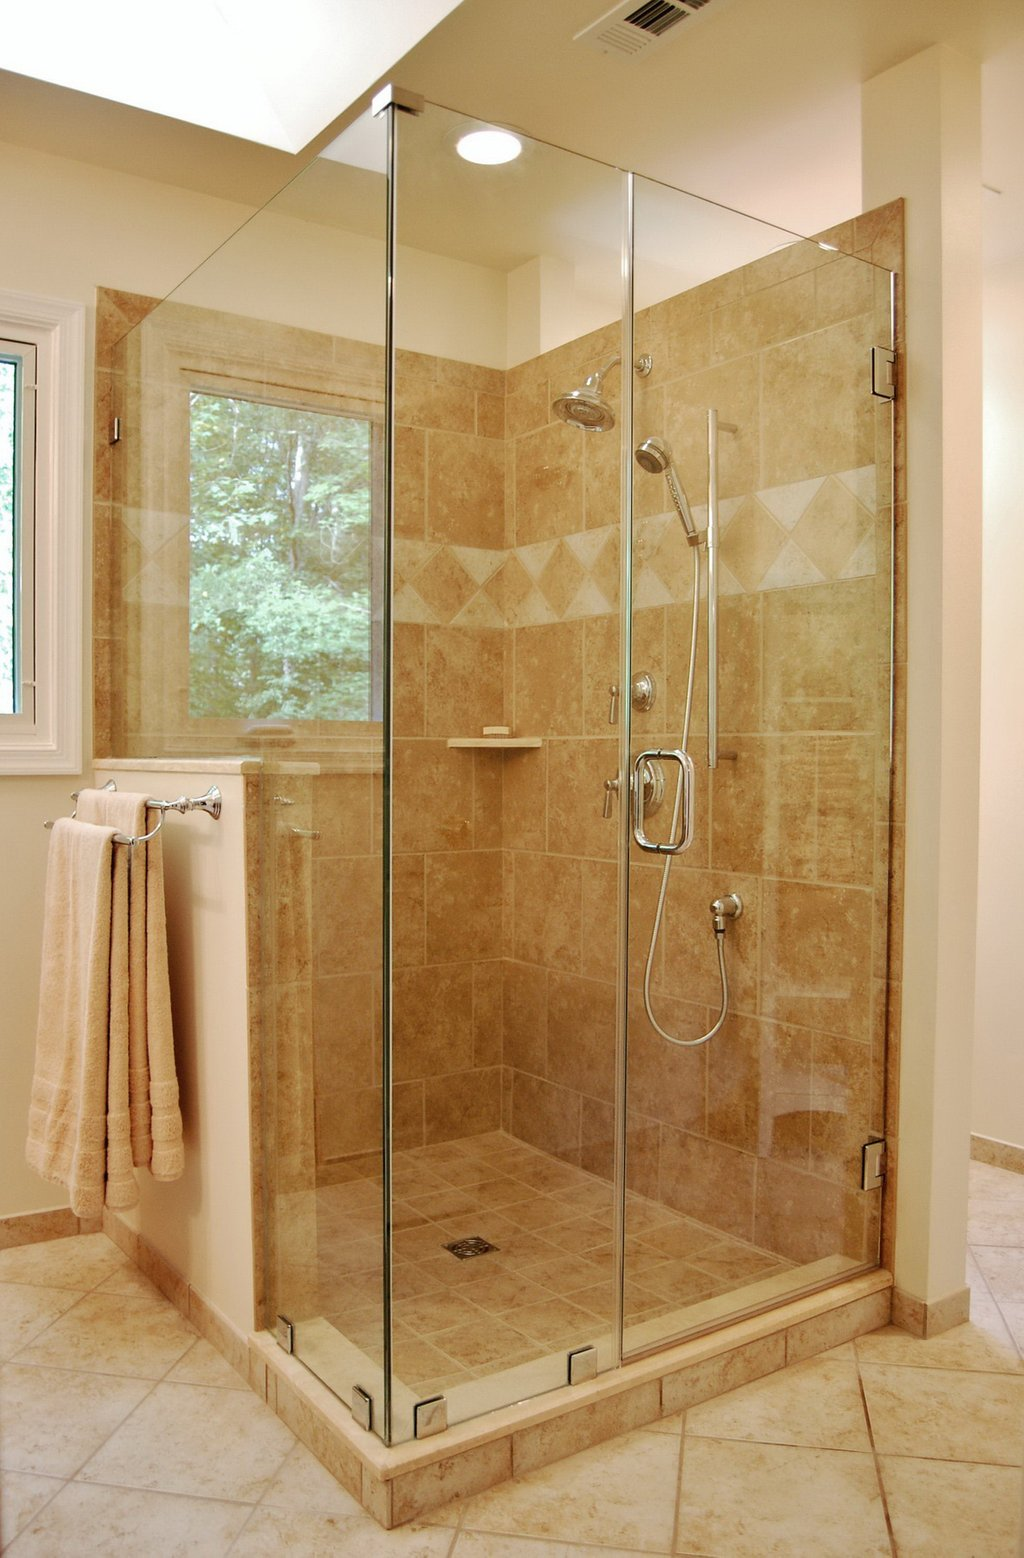 Benefit Glass Enclosed Shower Homesfeed Shower Stalls For Small Bathrooms